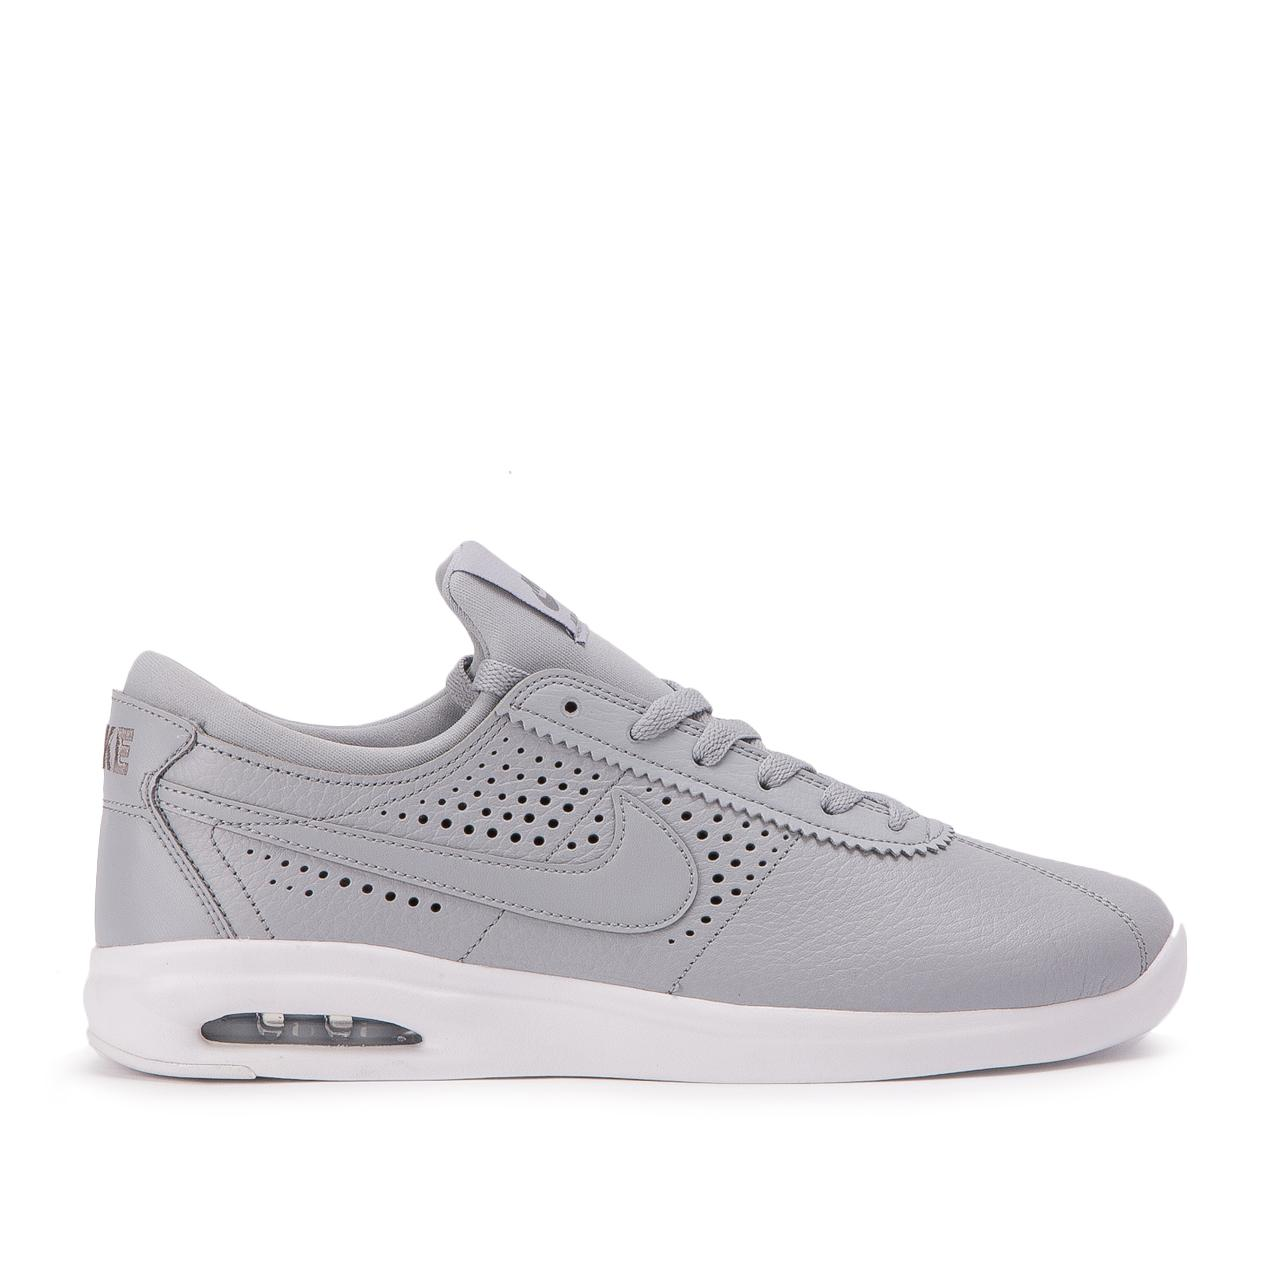 290c4bcd033a Nike - Gray Air Max Bruin Vapor Leather for Men - Lyst. View fullscreen